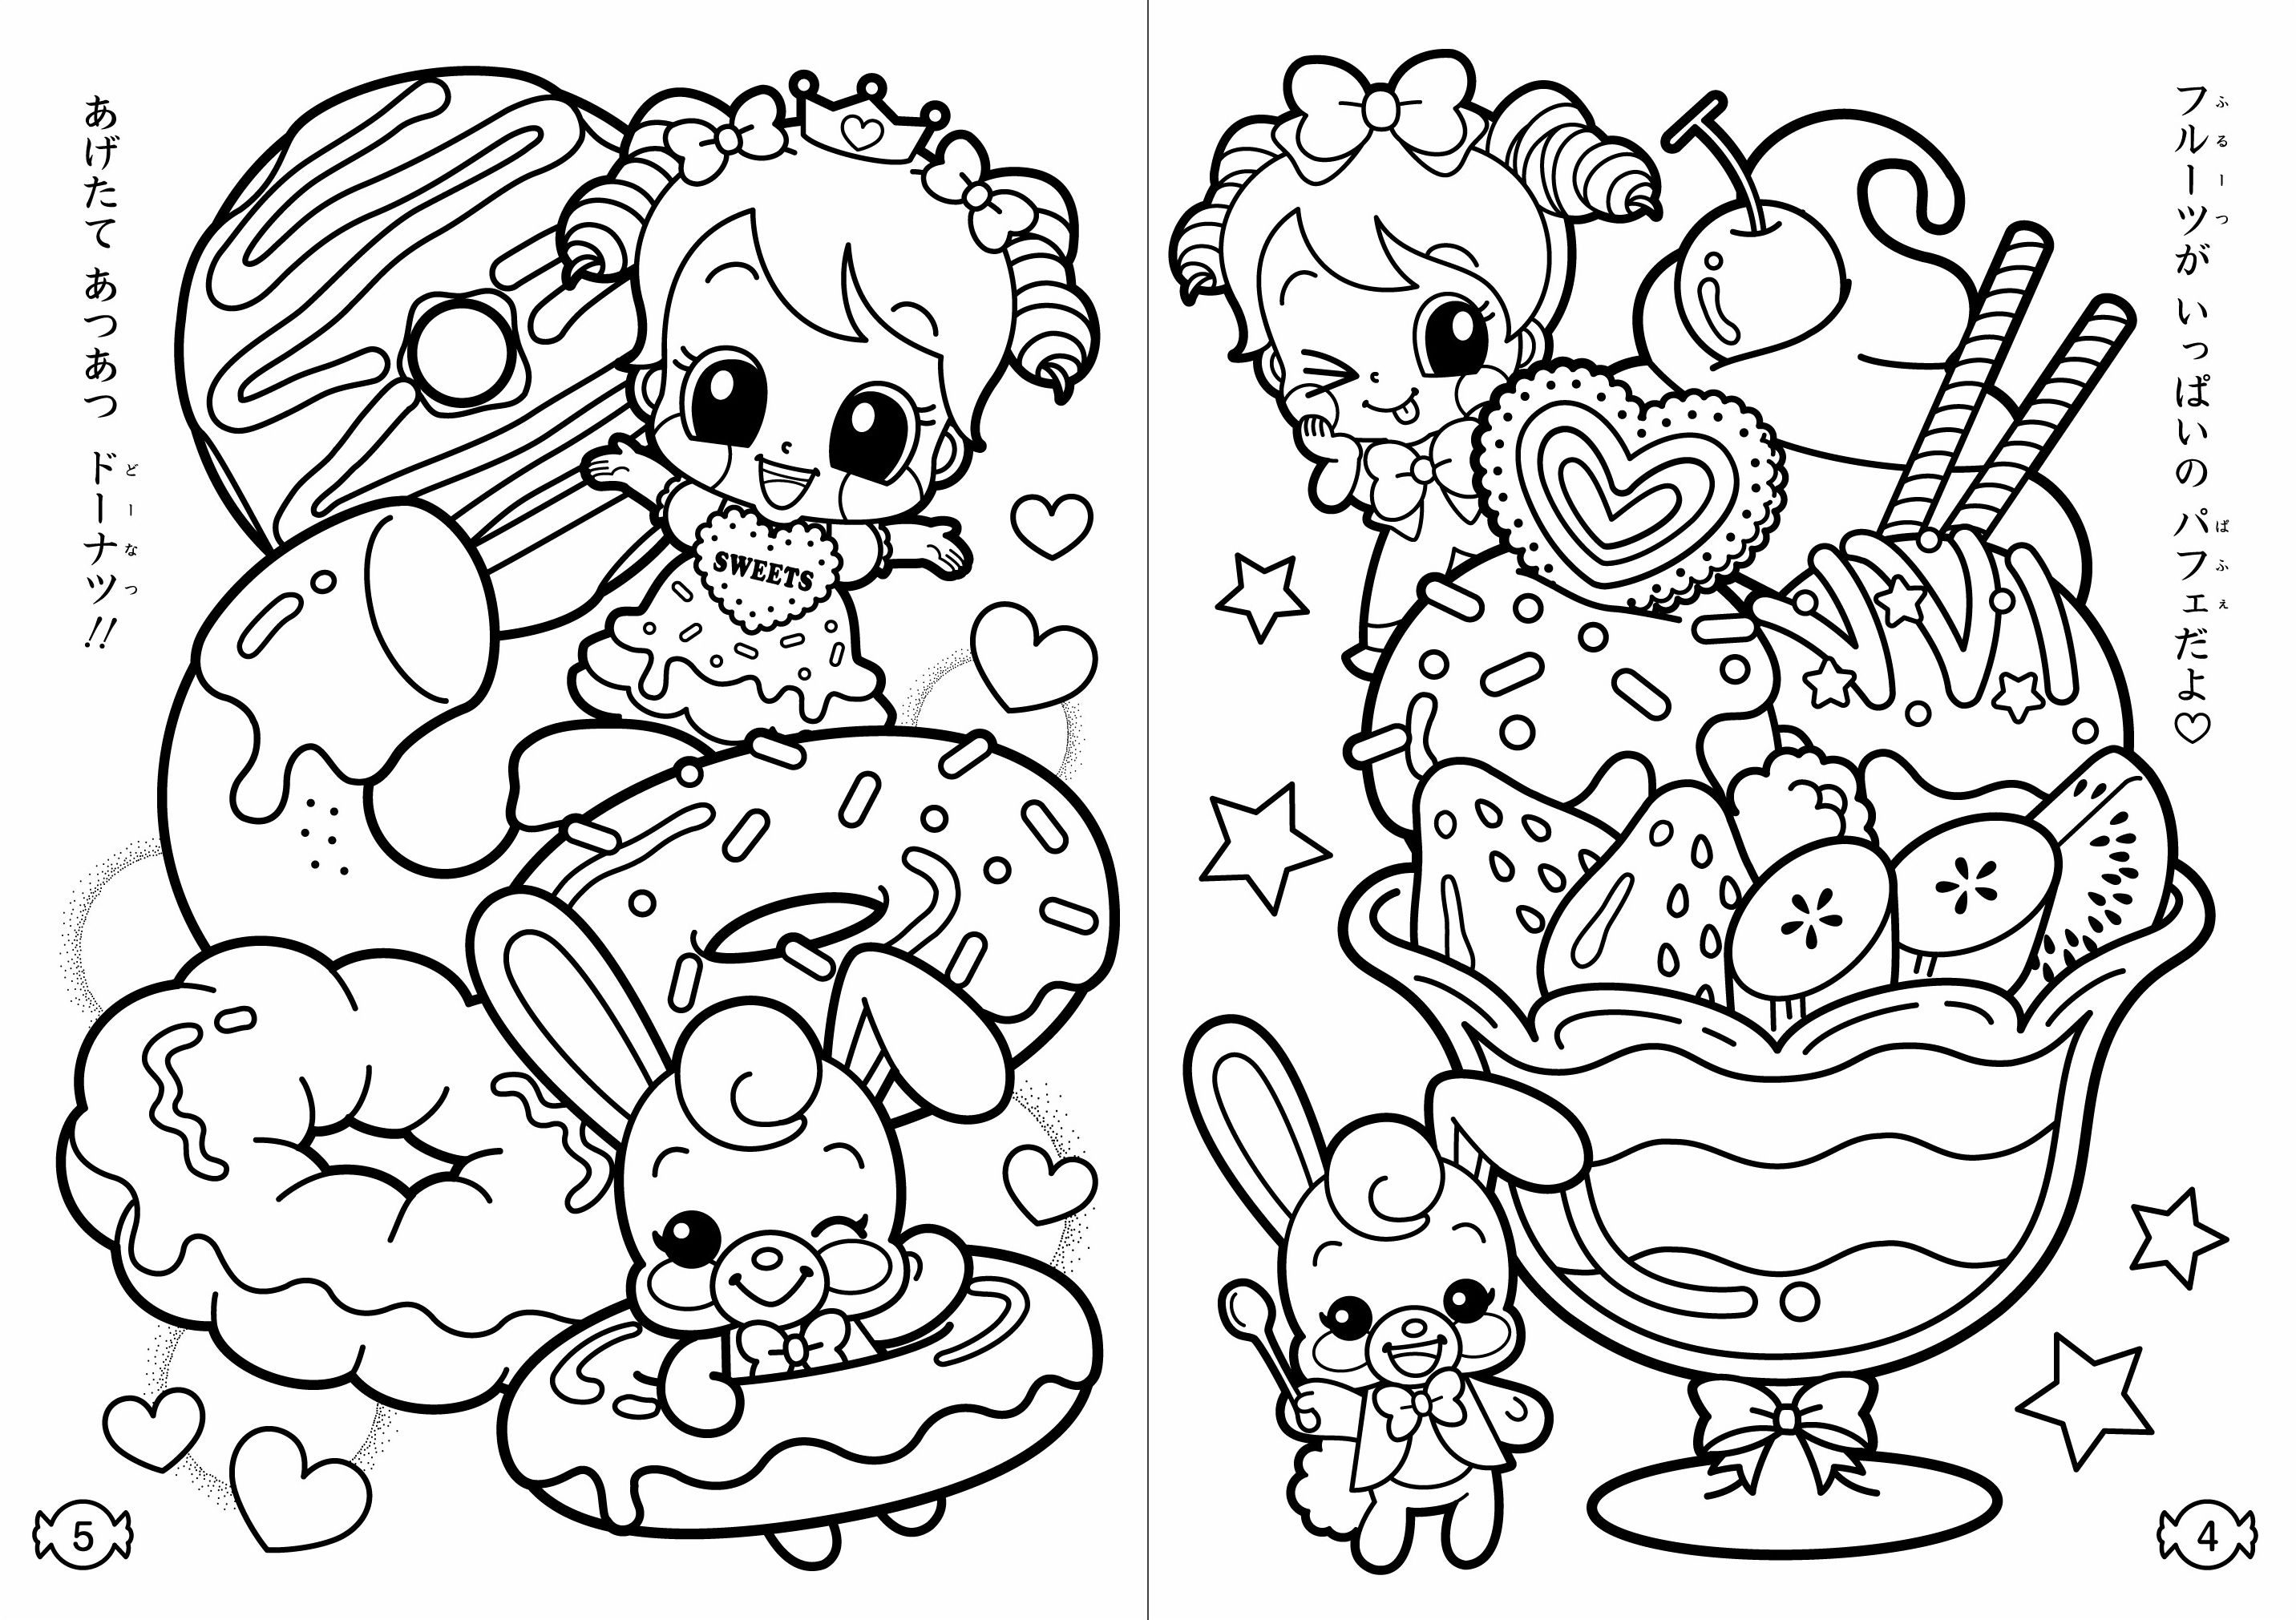 Pin By Karriekwann On Coloring Pages Unicorn Coloring Pages Disney Coloring Pages Cute Coloring Pages